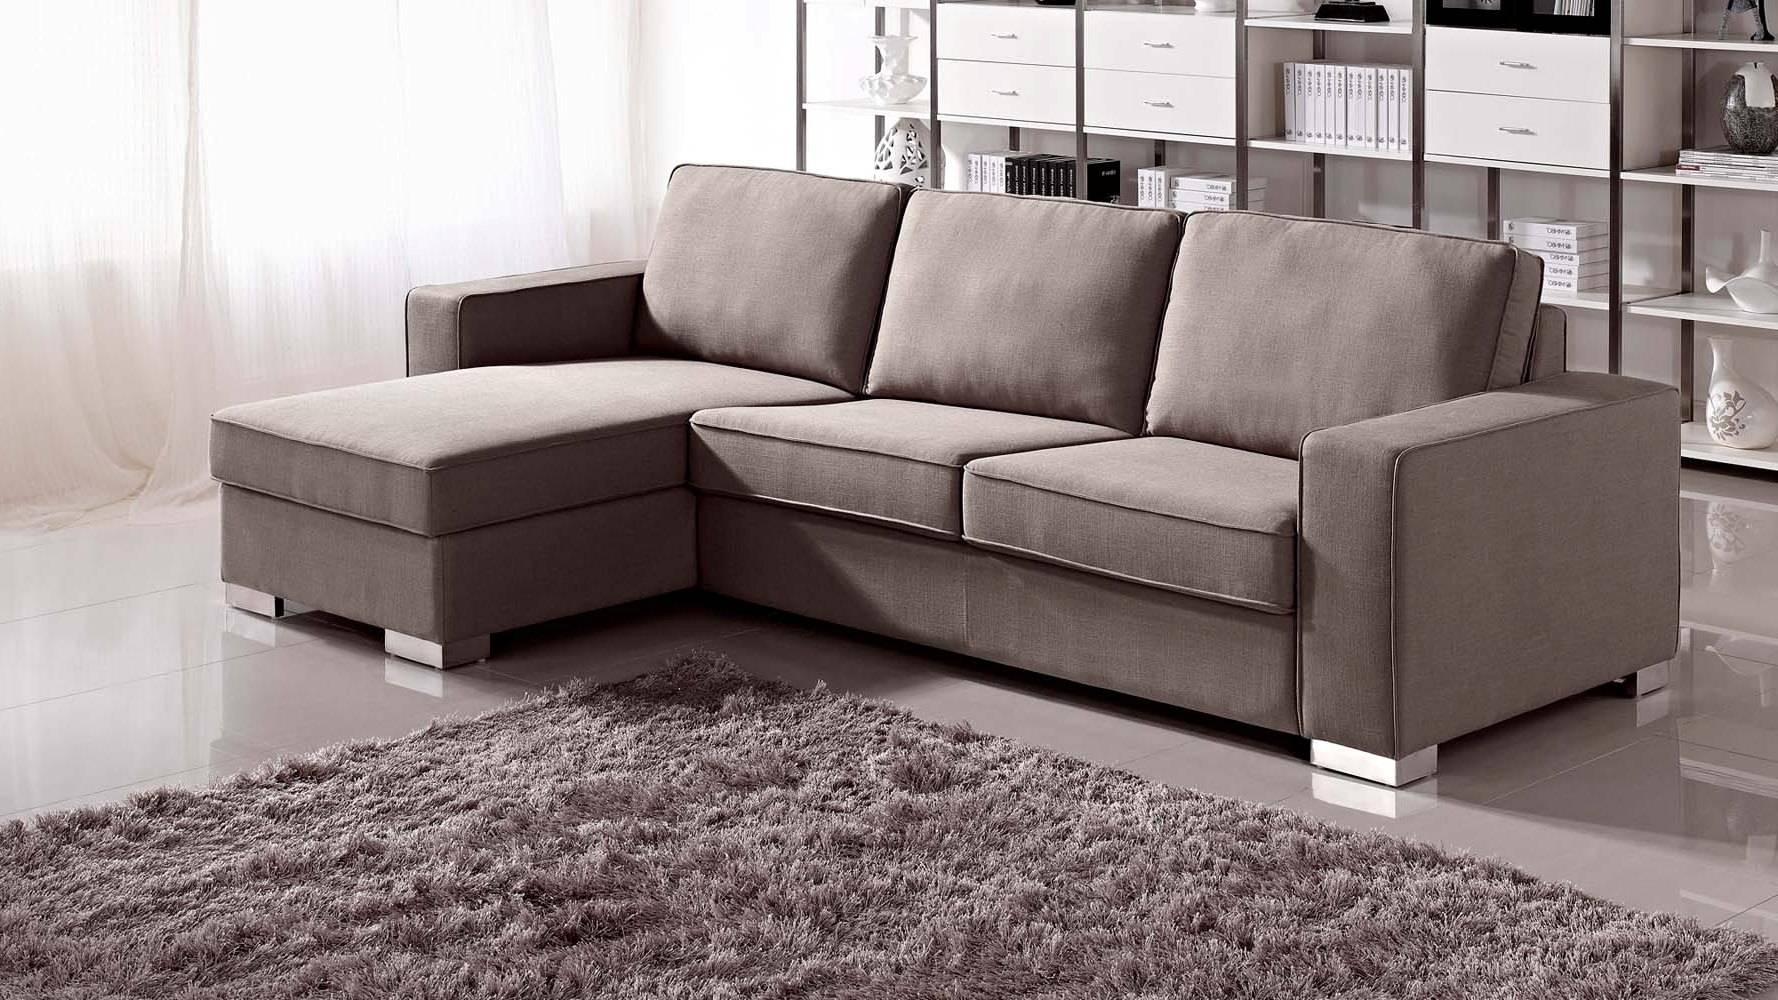 Popular Photo of Sectional Sleeper Sofas With Chaise